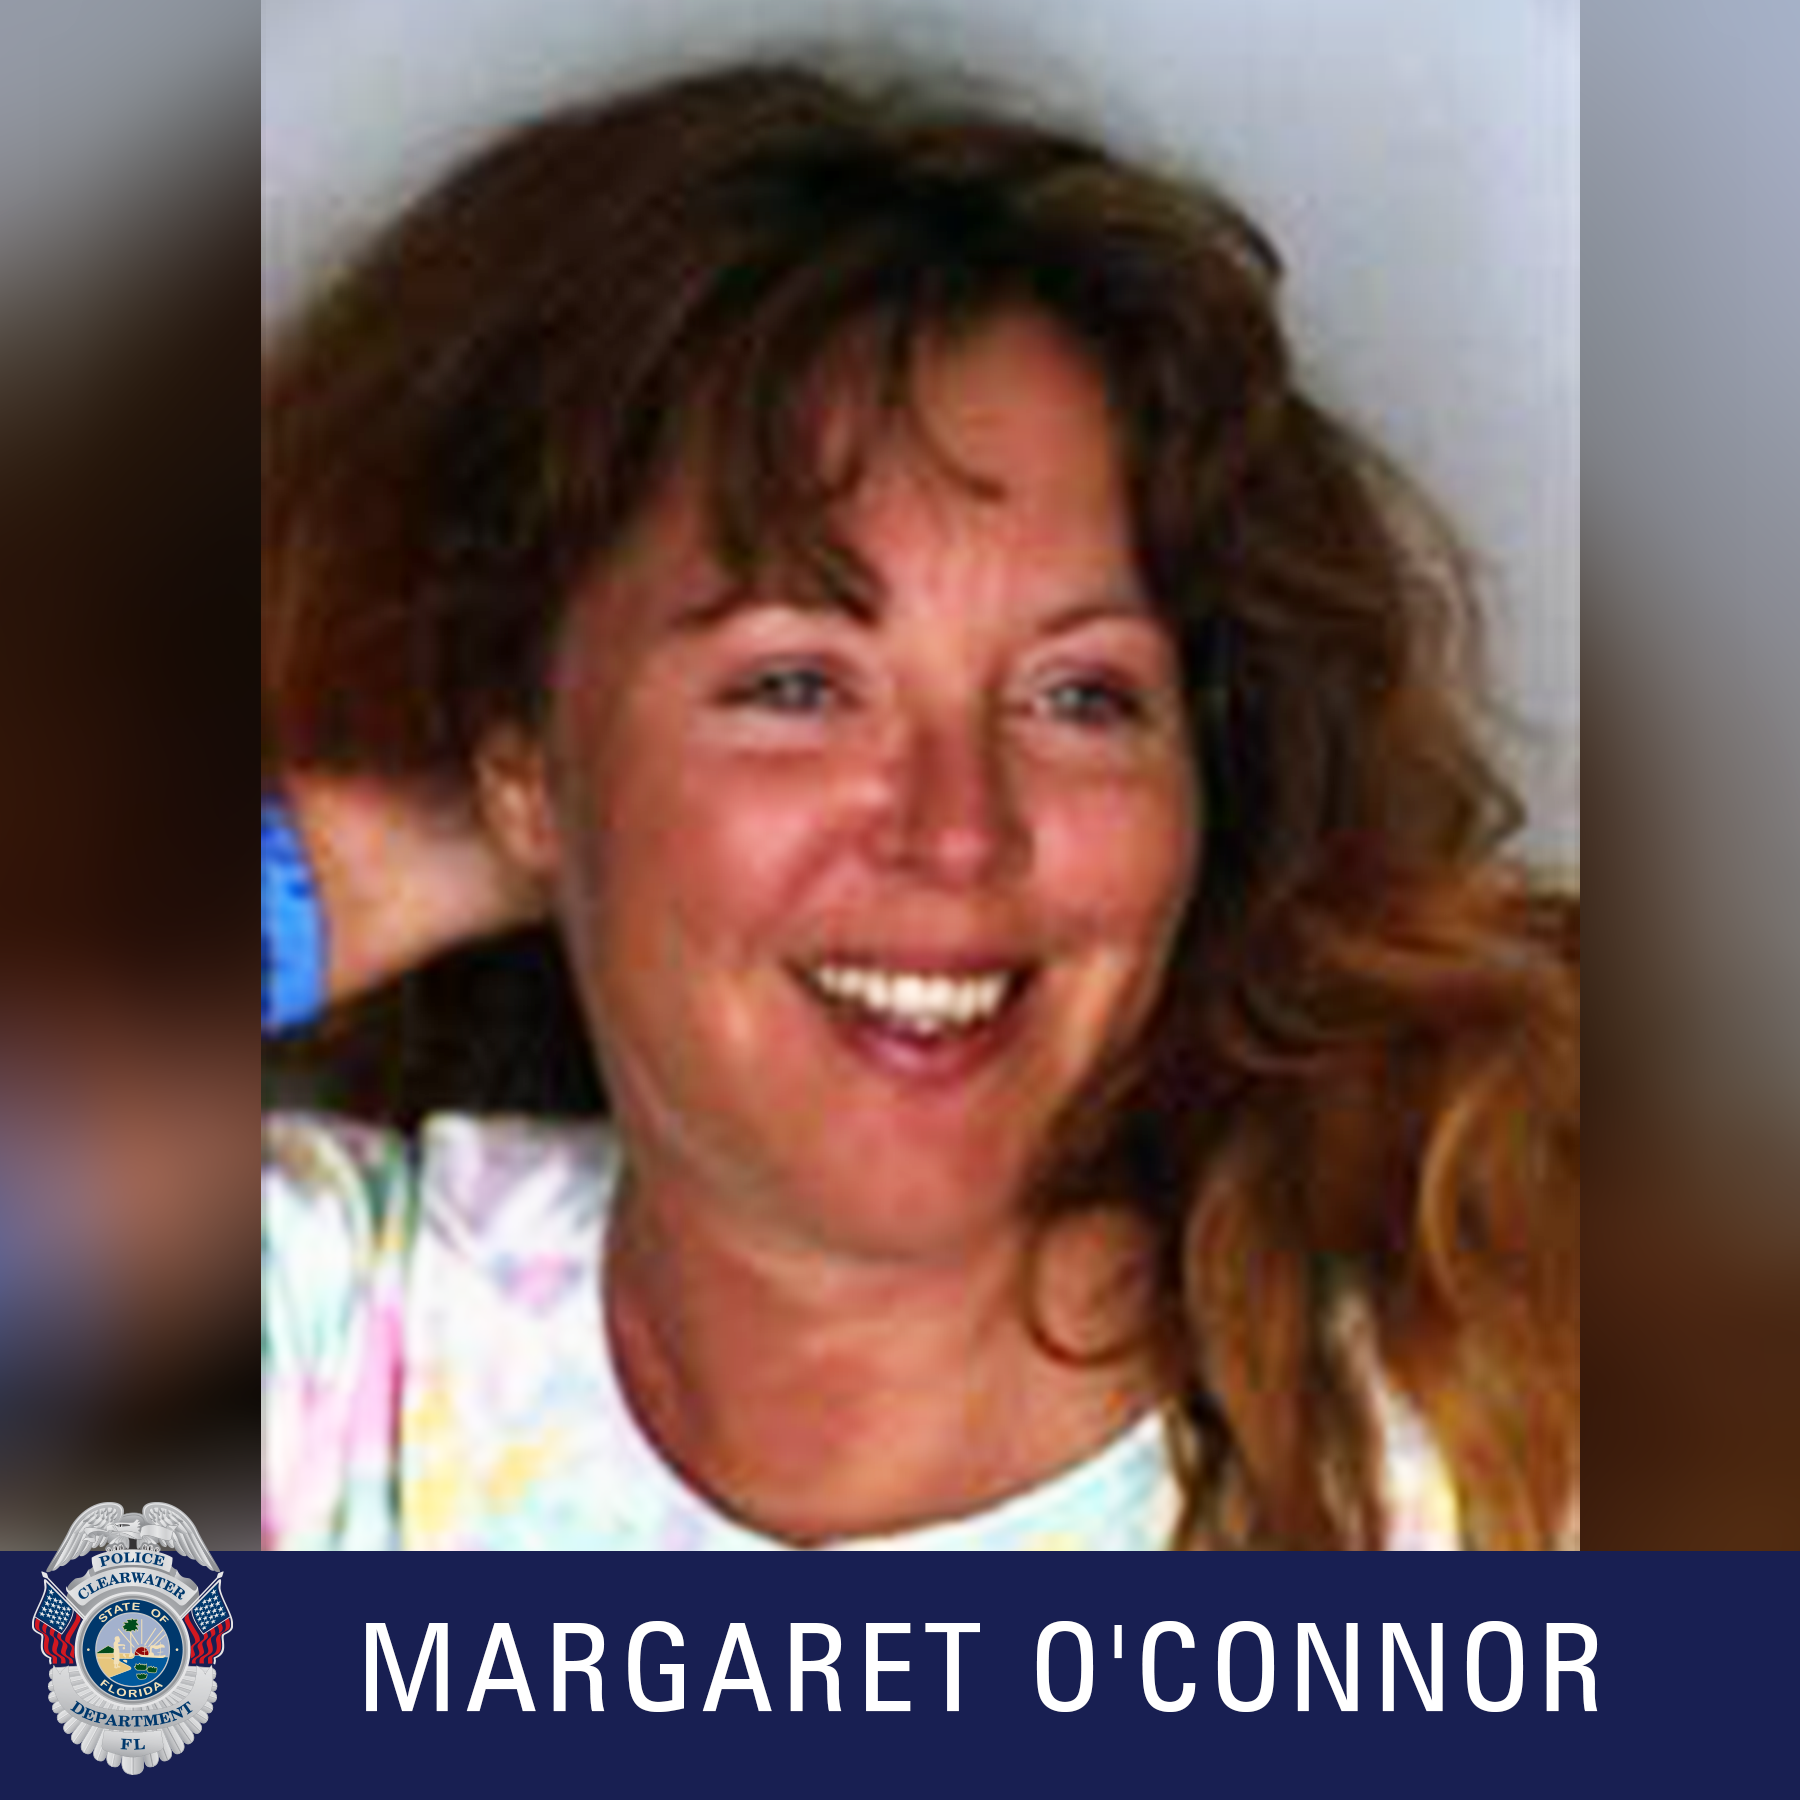 Margaret O'Connor, Clearwater Police Department Shield, Female with brown hair smiling looking away